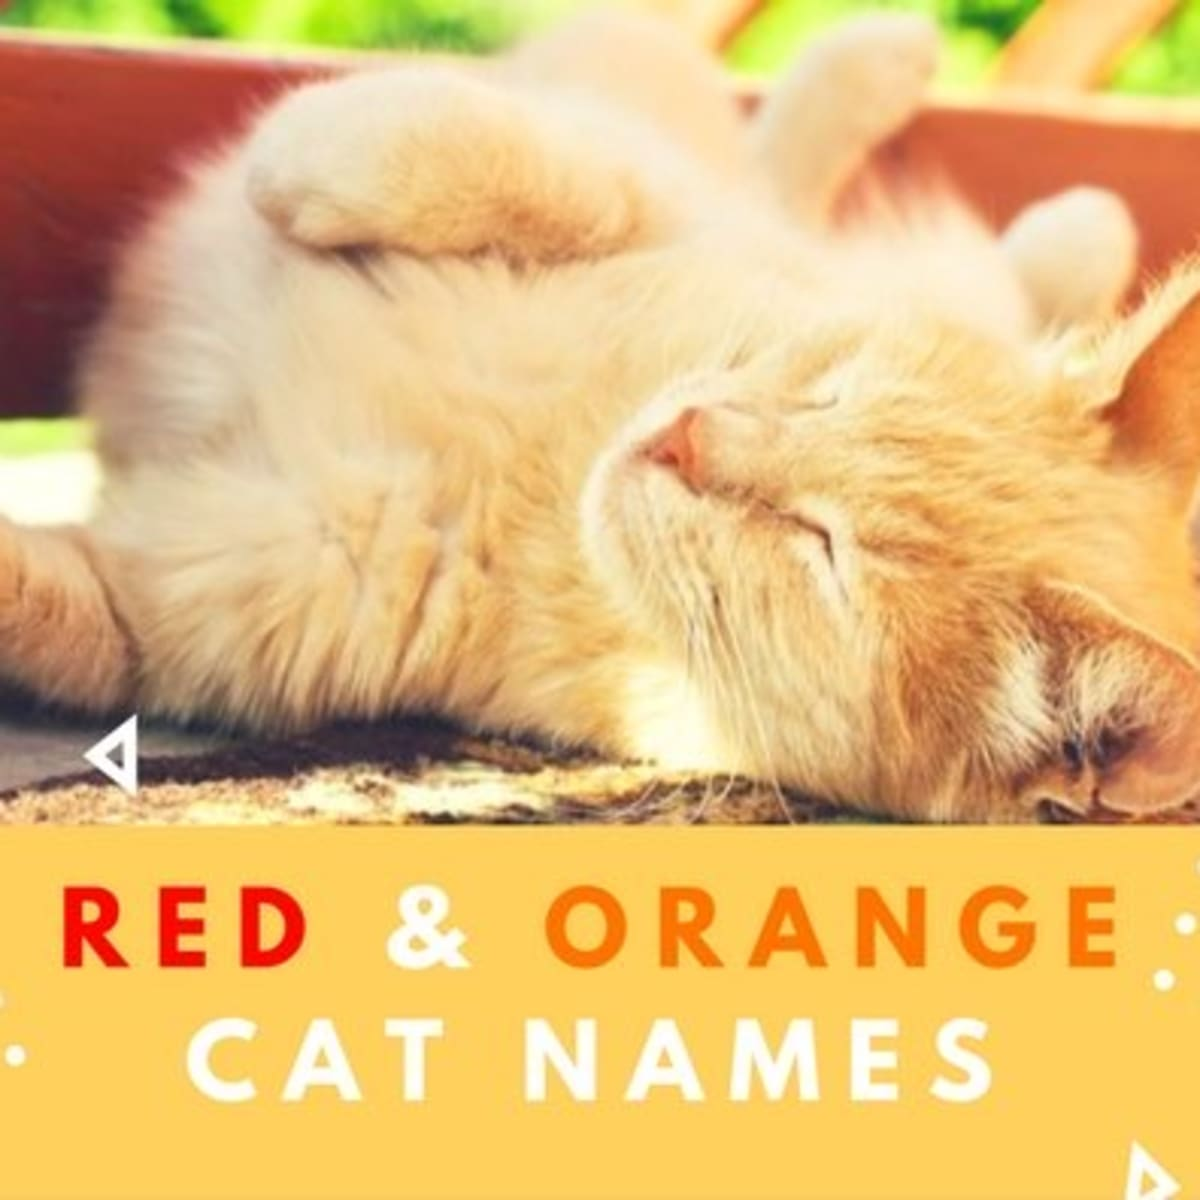 60 Badass Names For Red Or Orange Cats Pethelpful By Fellow Animal Lovers And Experts